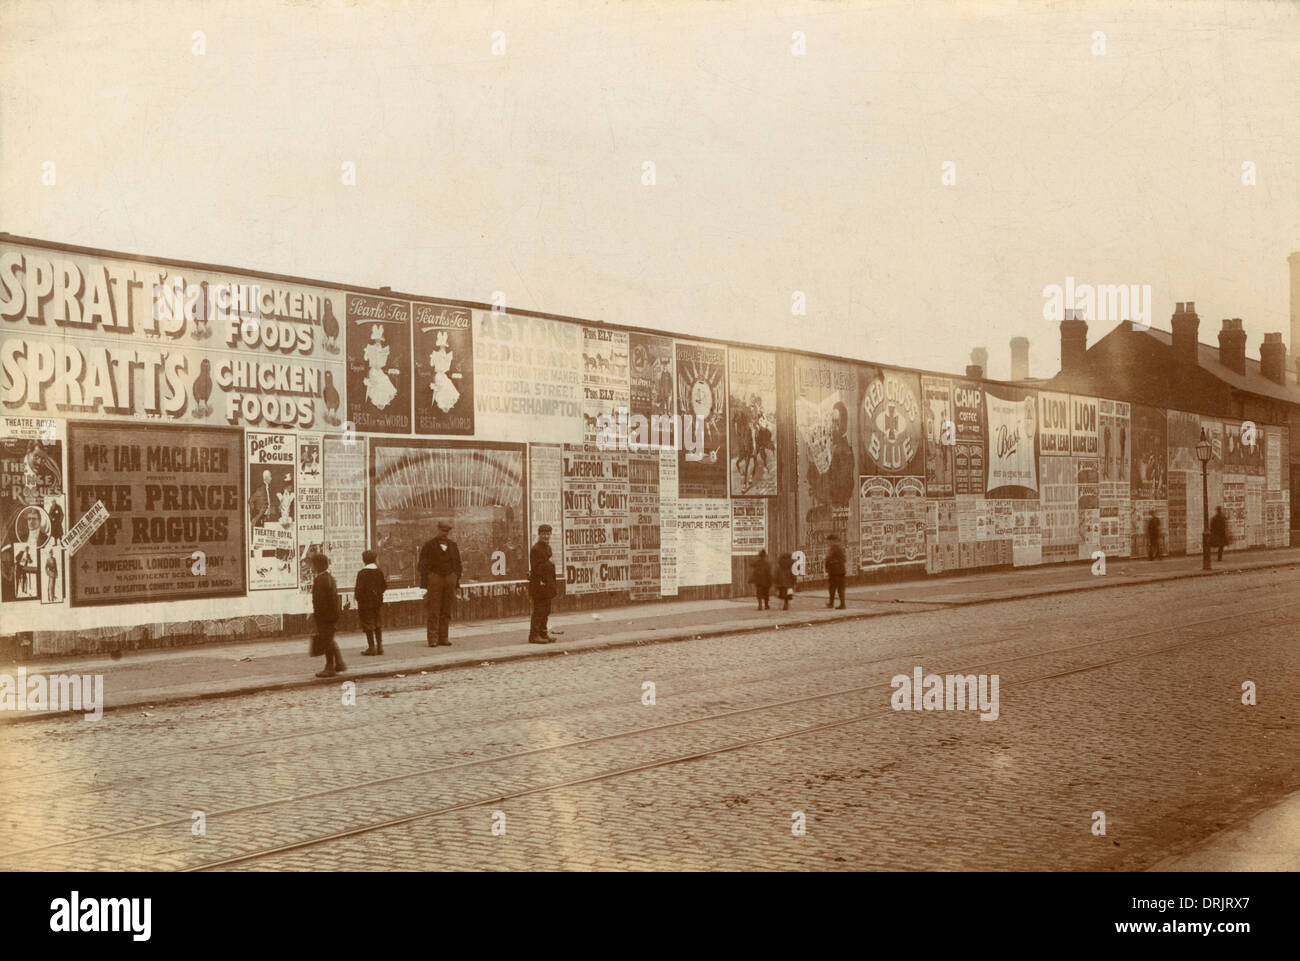 A wall of street poster advertisements in Wolverhampton. - Stock Image